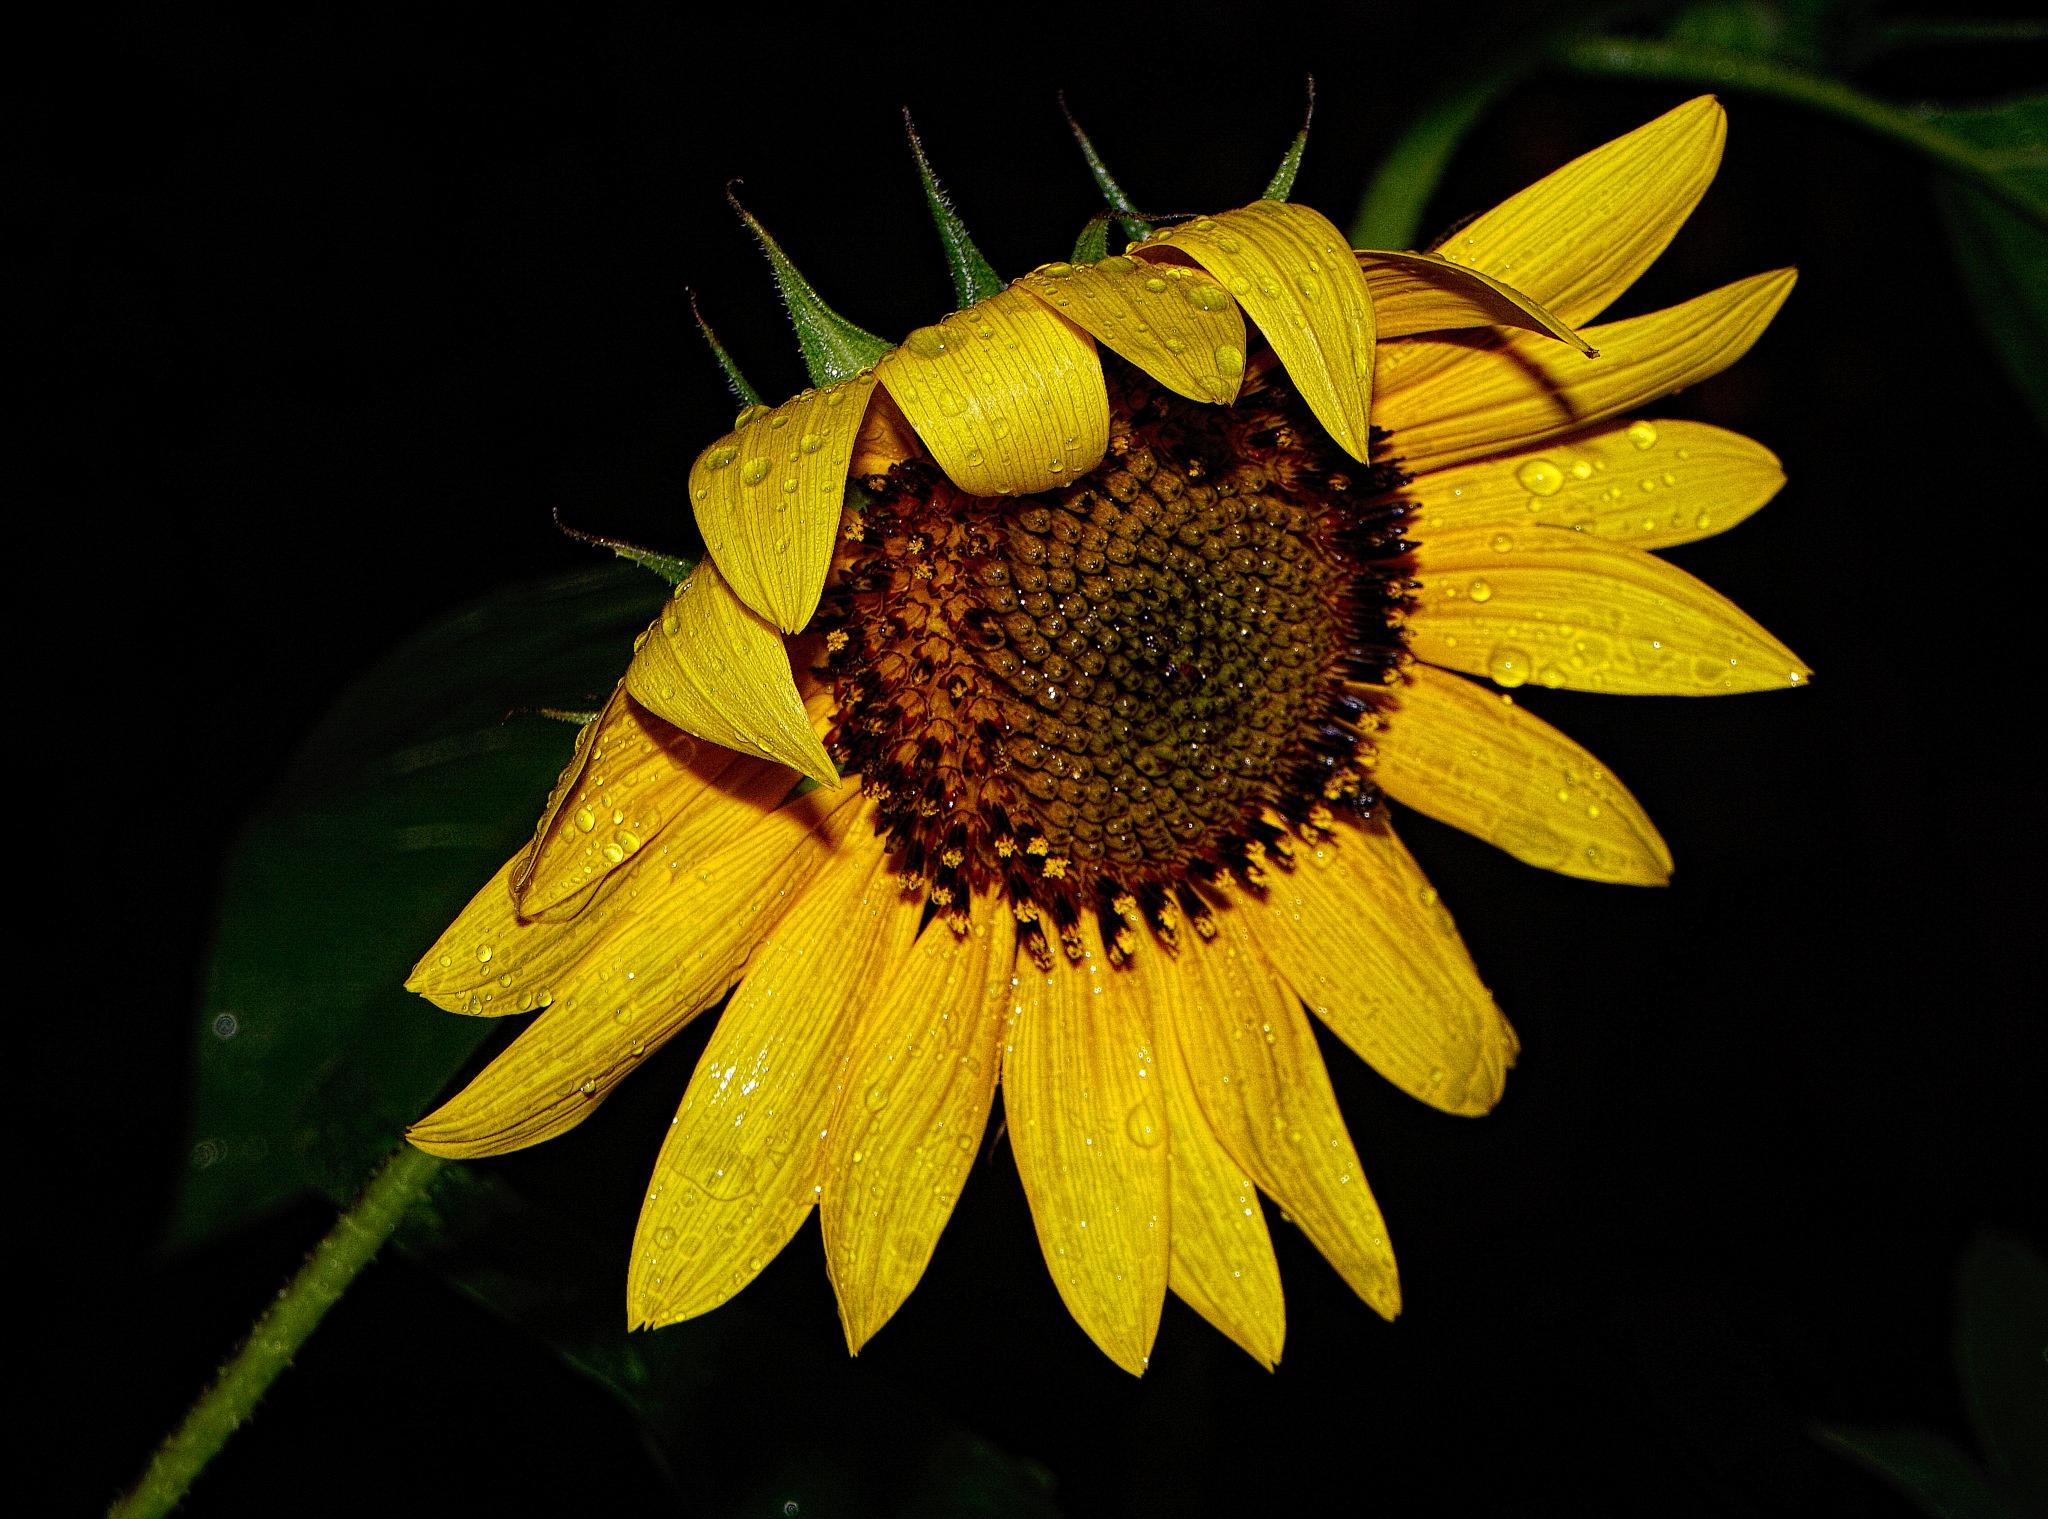 Sunflower by Steven R. Humphrey